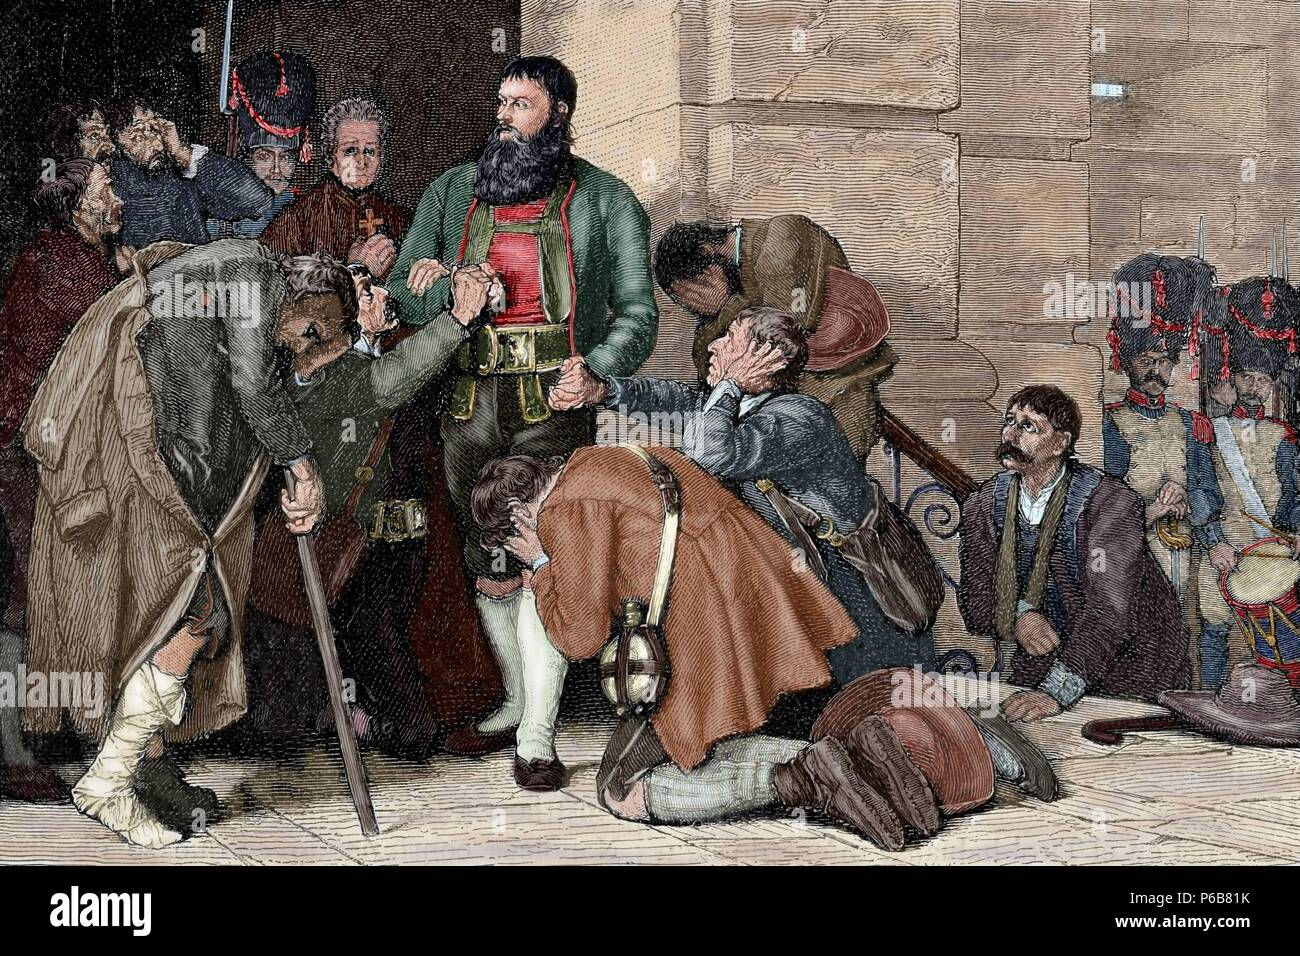 Andreas Hofer (1767-1810). Tyrolean patriot. Leader of the Tyrolean rebellion against Bonapartist imperialism. Hofer led to execution. Engraving. Colored. - Stock Image